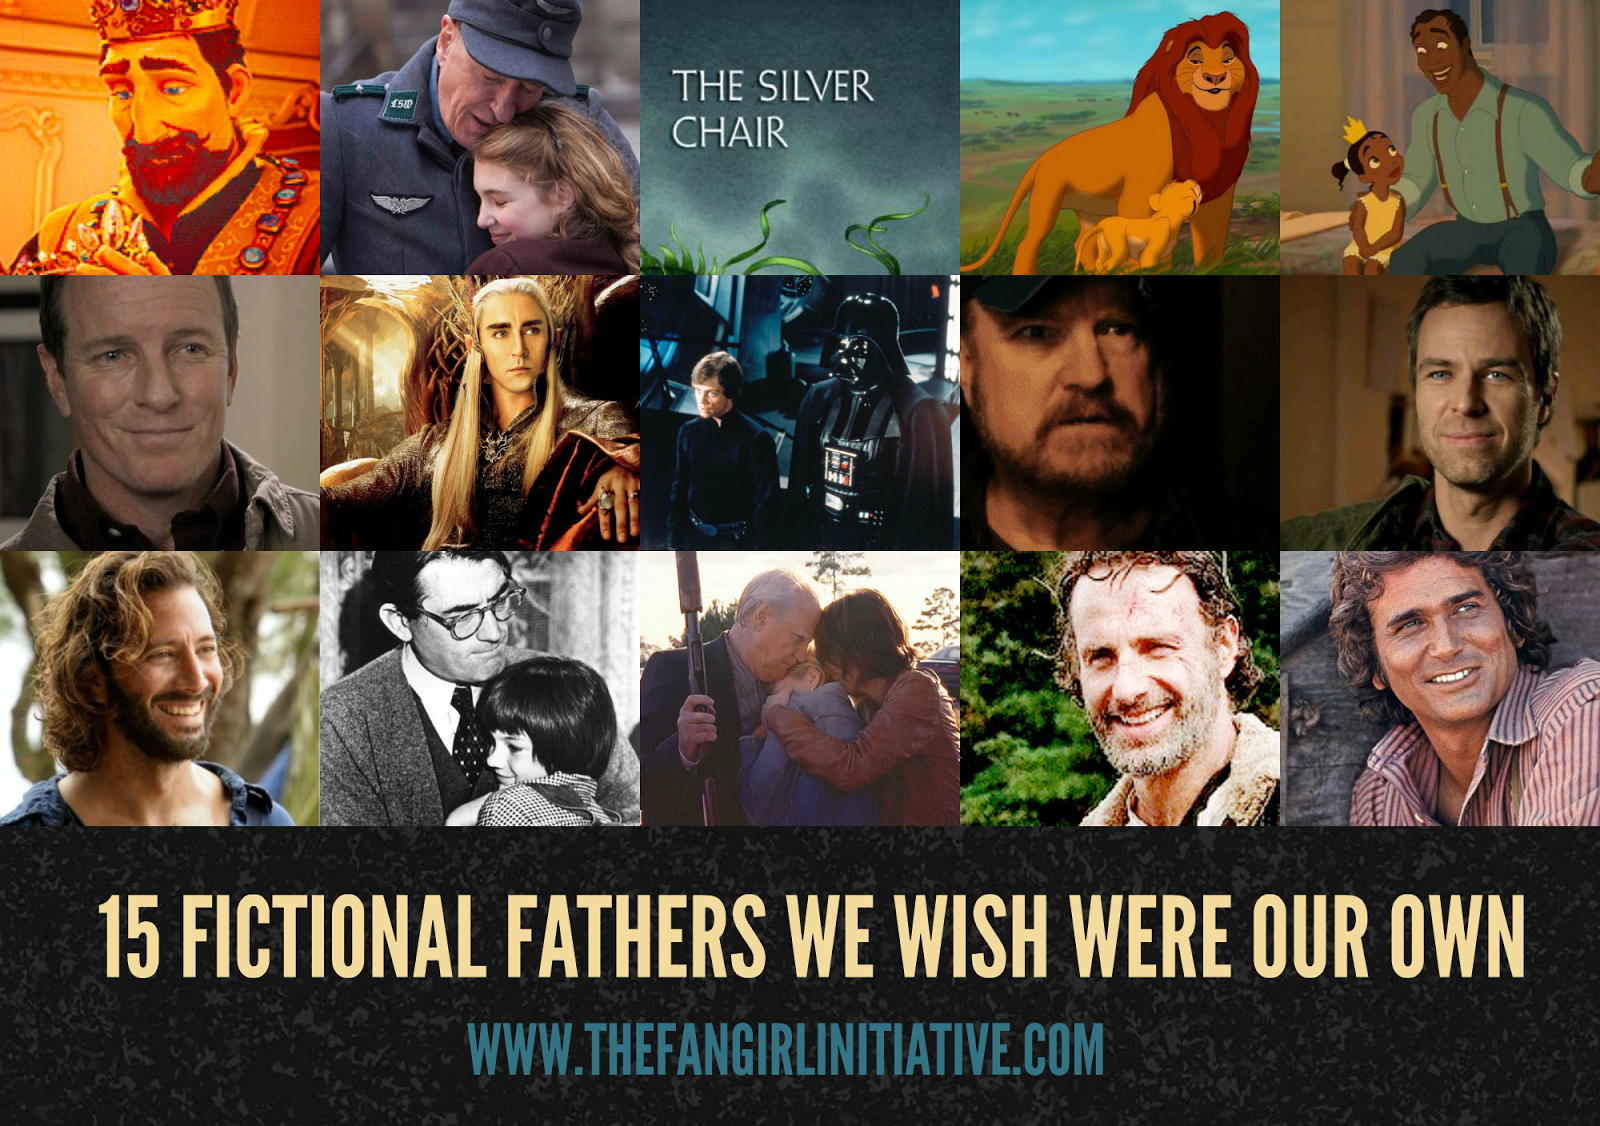 The Silver Chair Movie 2015 Bertoia Wire 15 Fictional Fathers We Wish Were Our Own Fangirl Initiative Father S Day Was Yesterday And Just Like Mothers There Are So Many Good Or Fatherly Figures In Fiction Wanted To Honor A Few Of